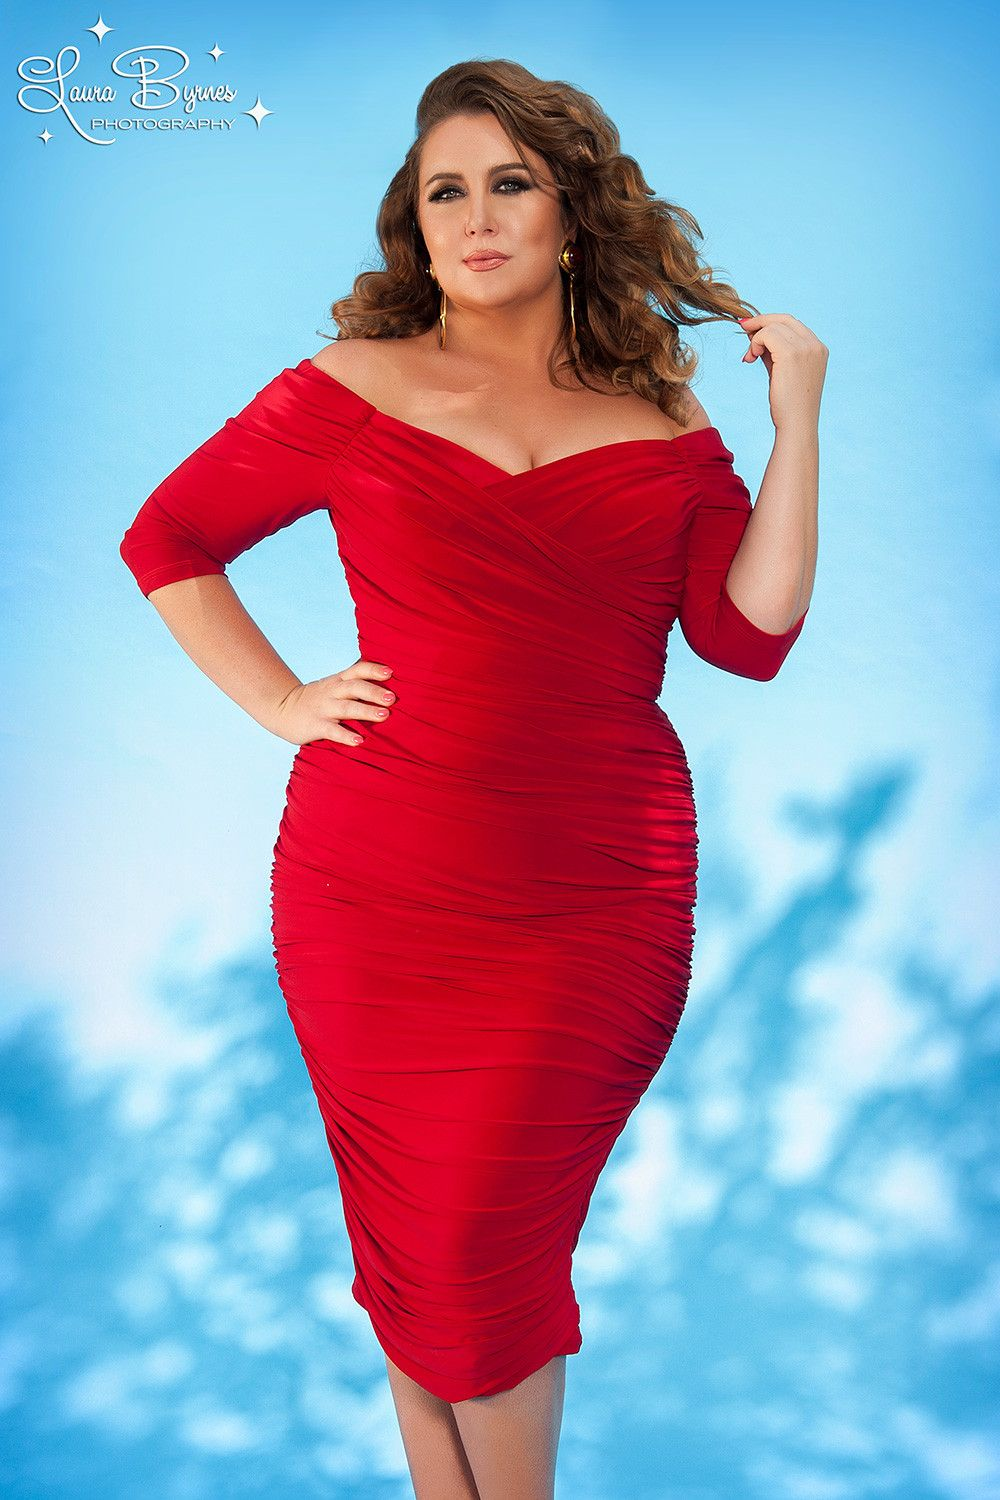 Laura byrnes california plus size monica vintage syle dress in red